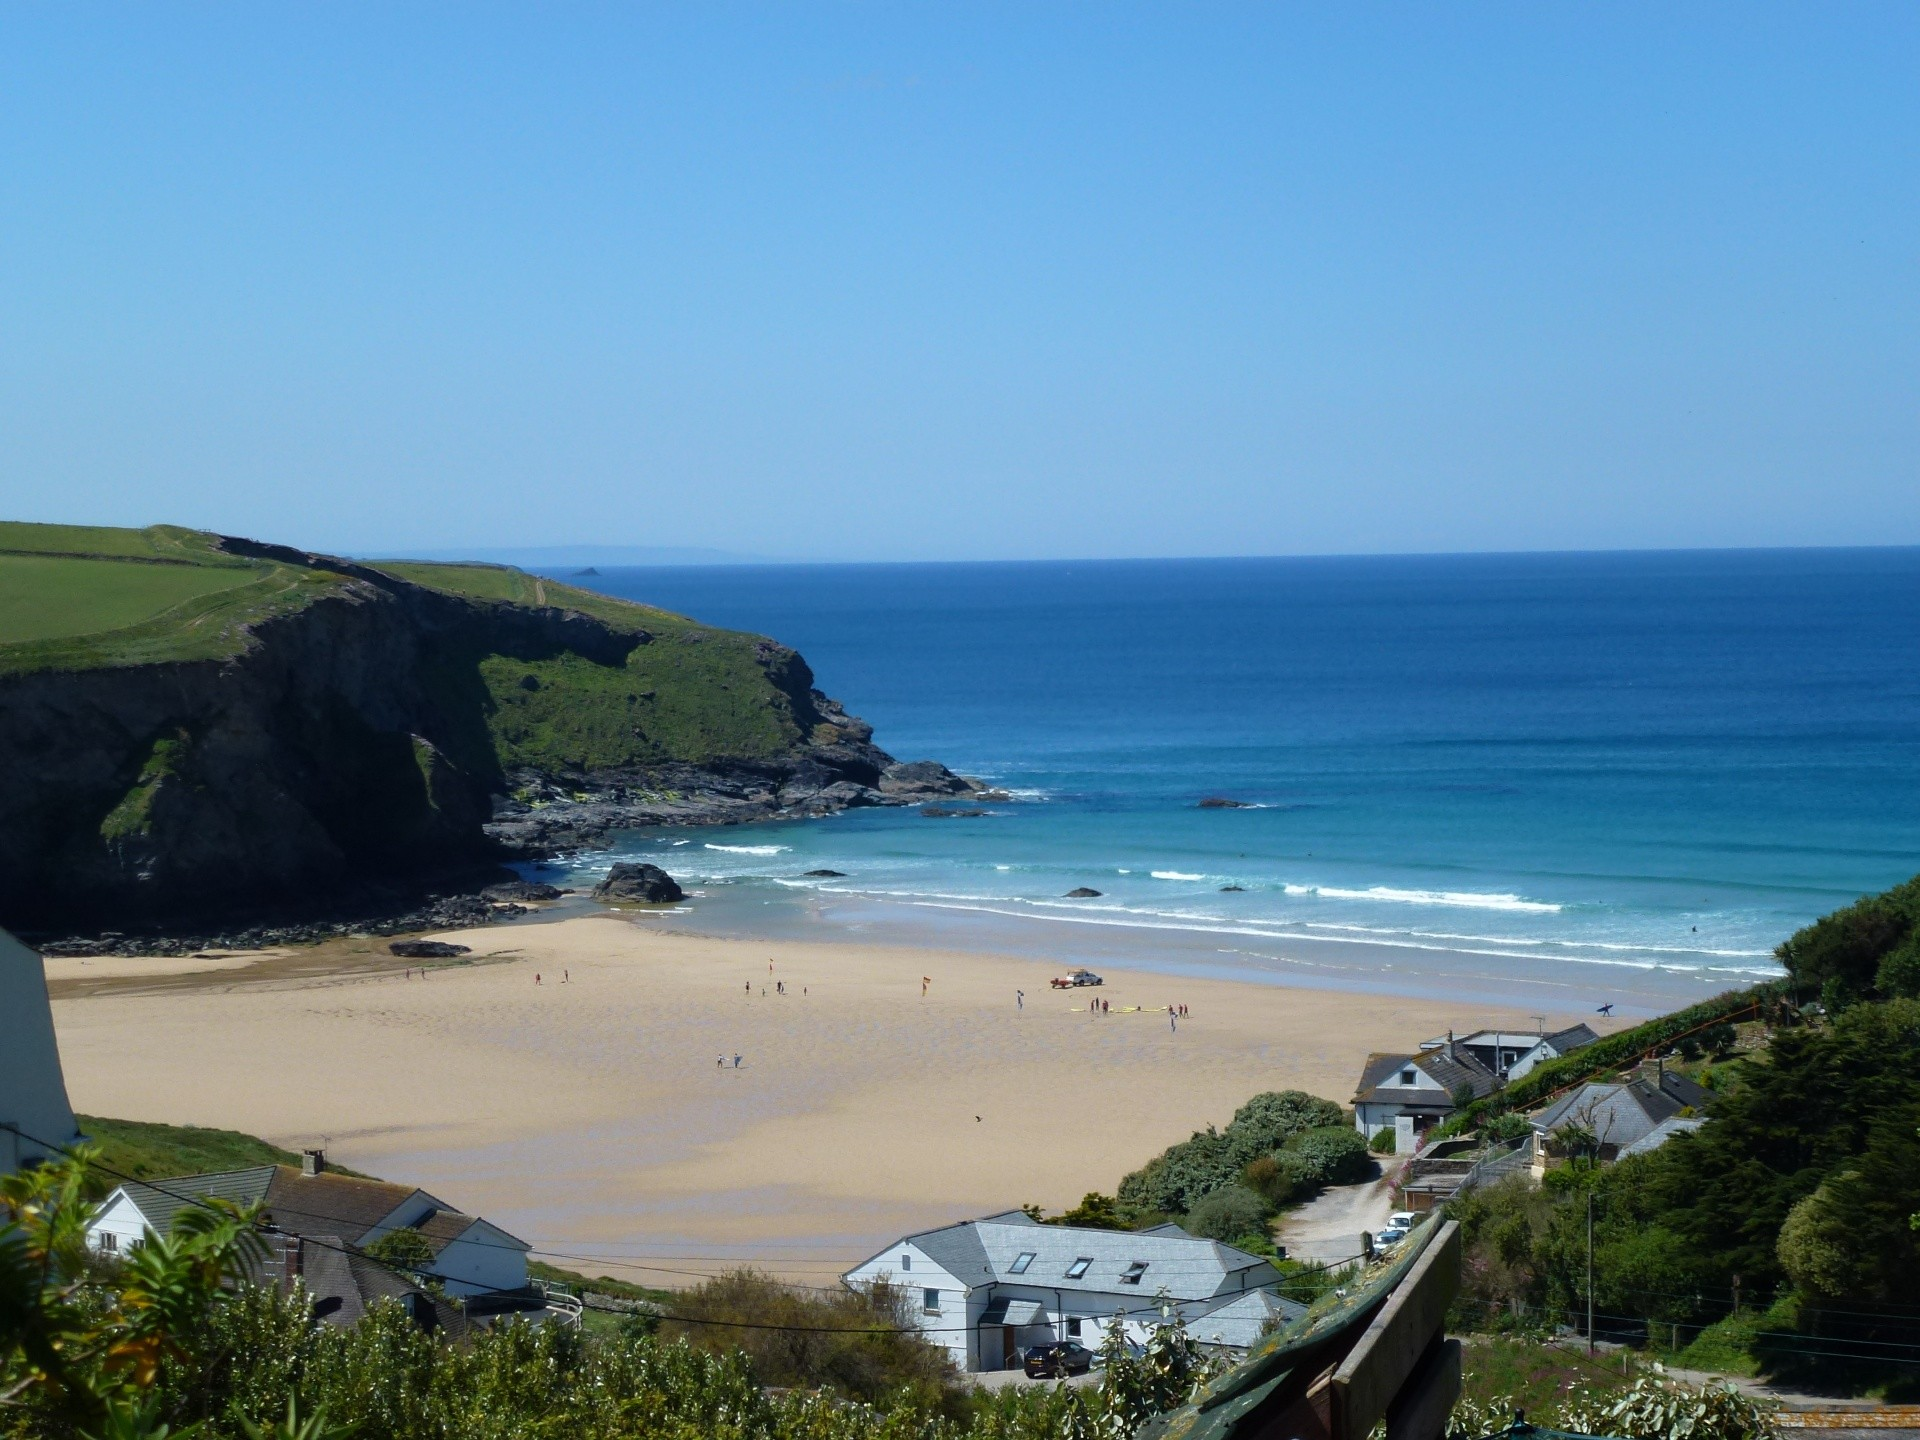 MawganPorthKieran's photo of Mawgan Porth